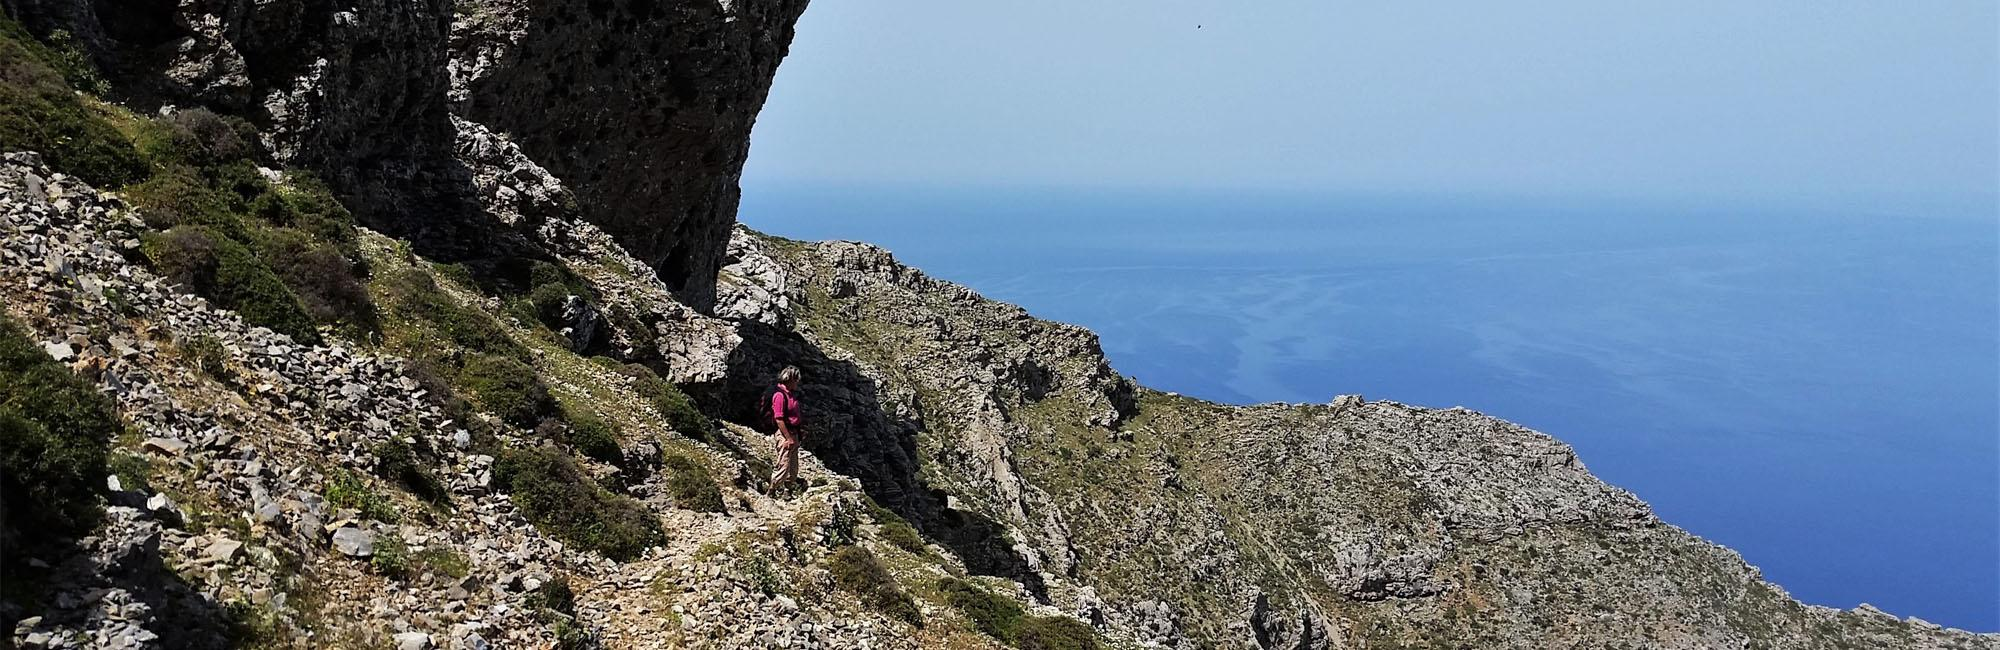 hiking in Amorgos island